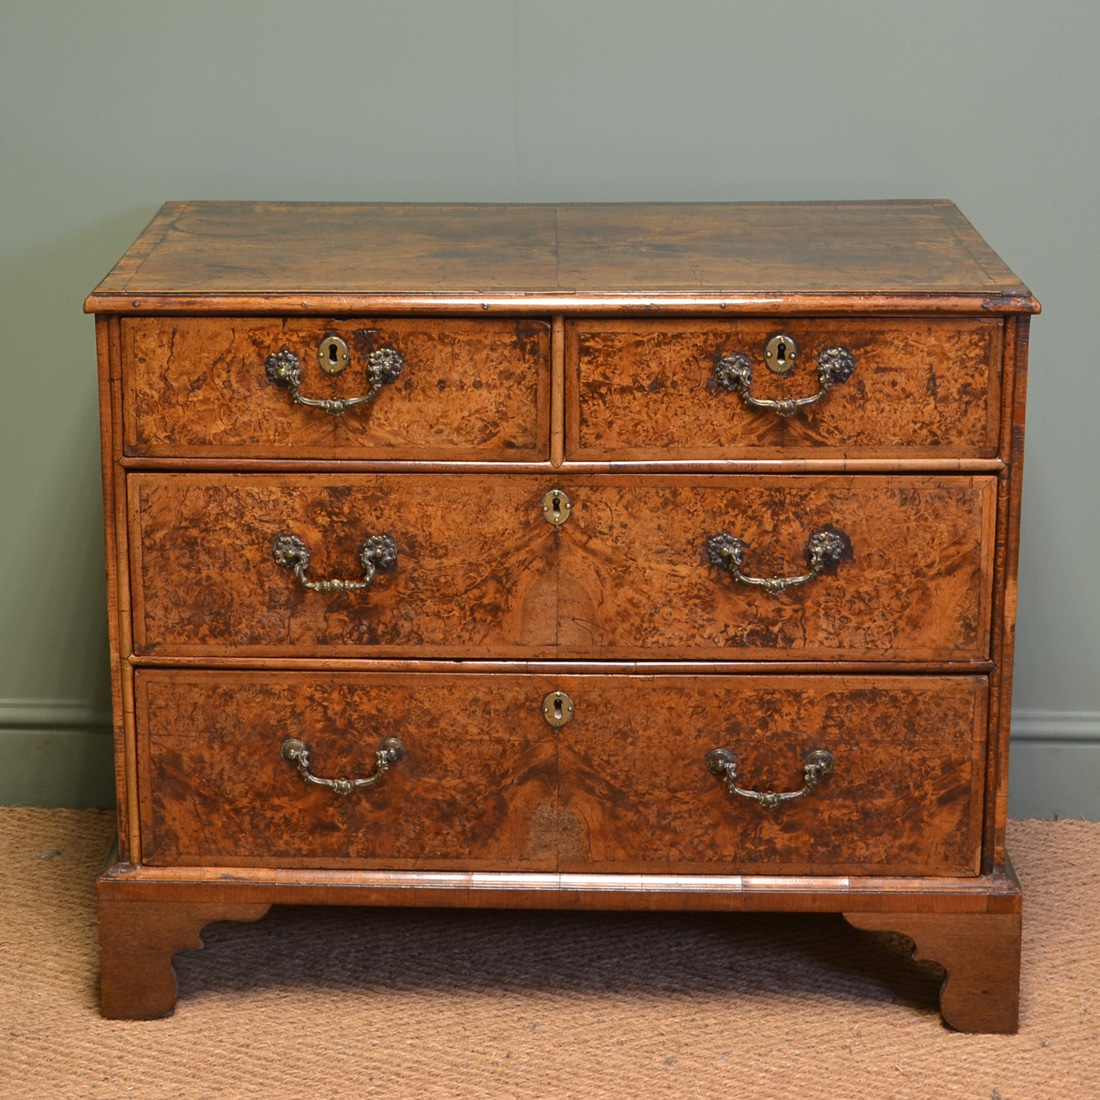 Where can I Sell My Antique Furniture? - Where Can I Sell My Antique Furniture? - Antiques World